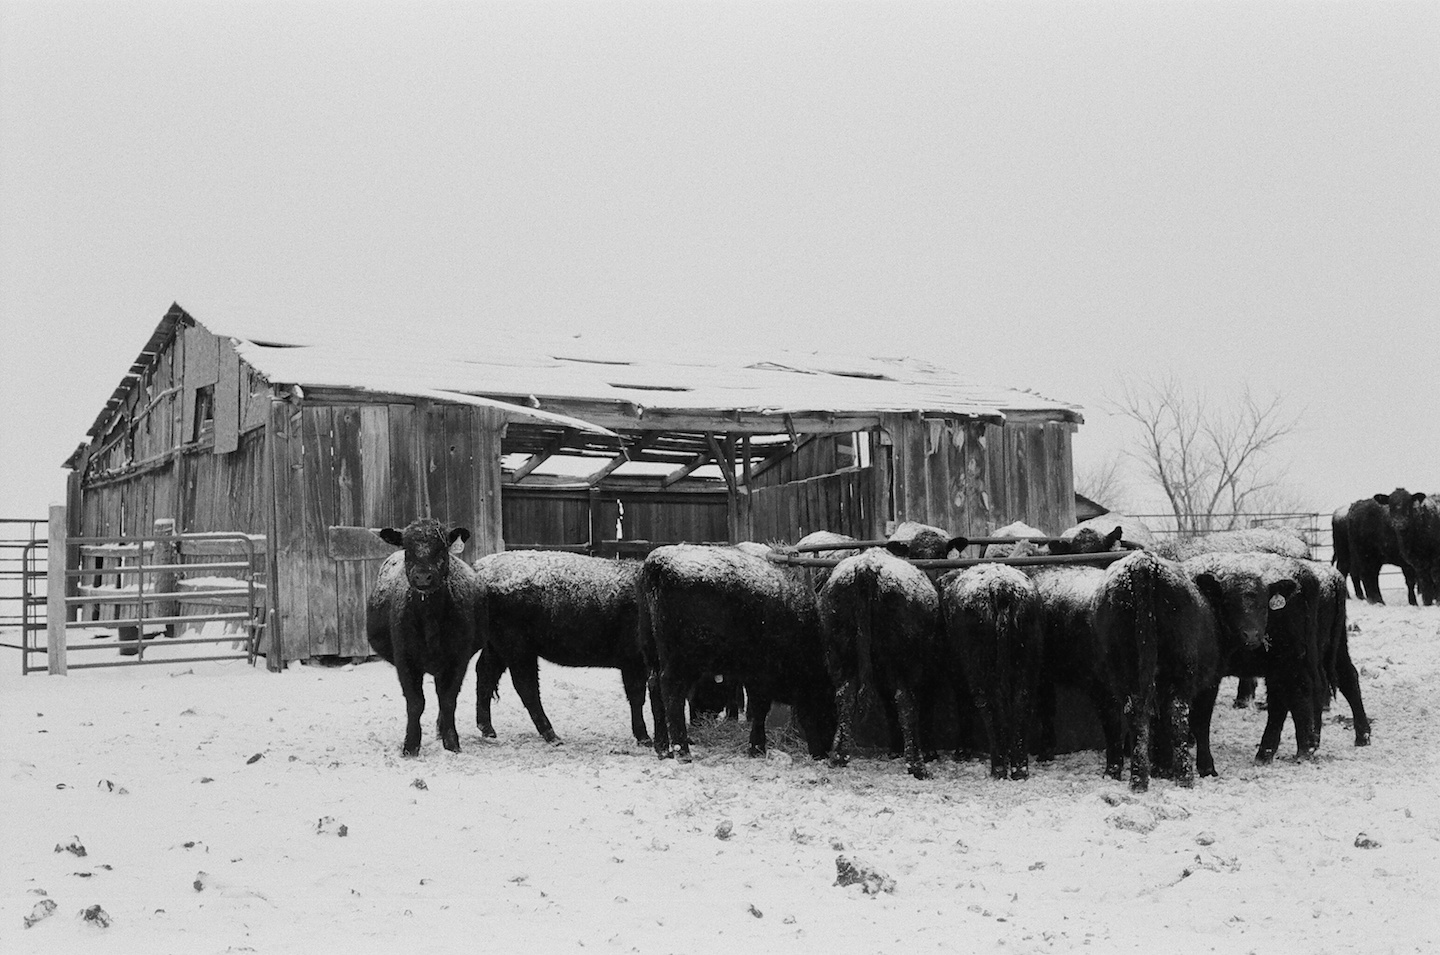 heifers eating in the snow